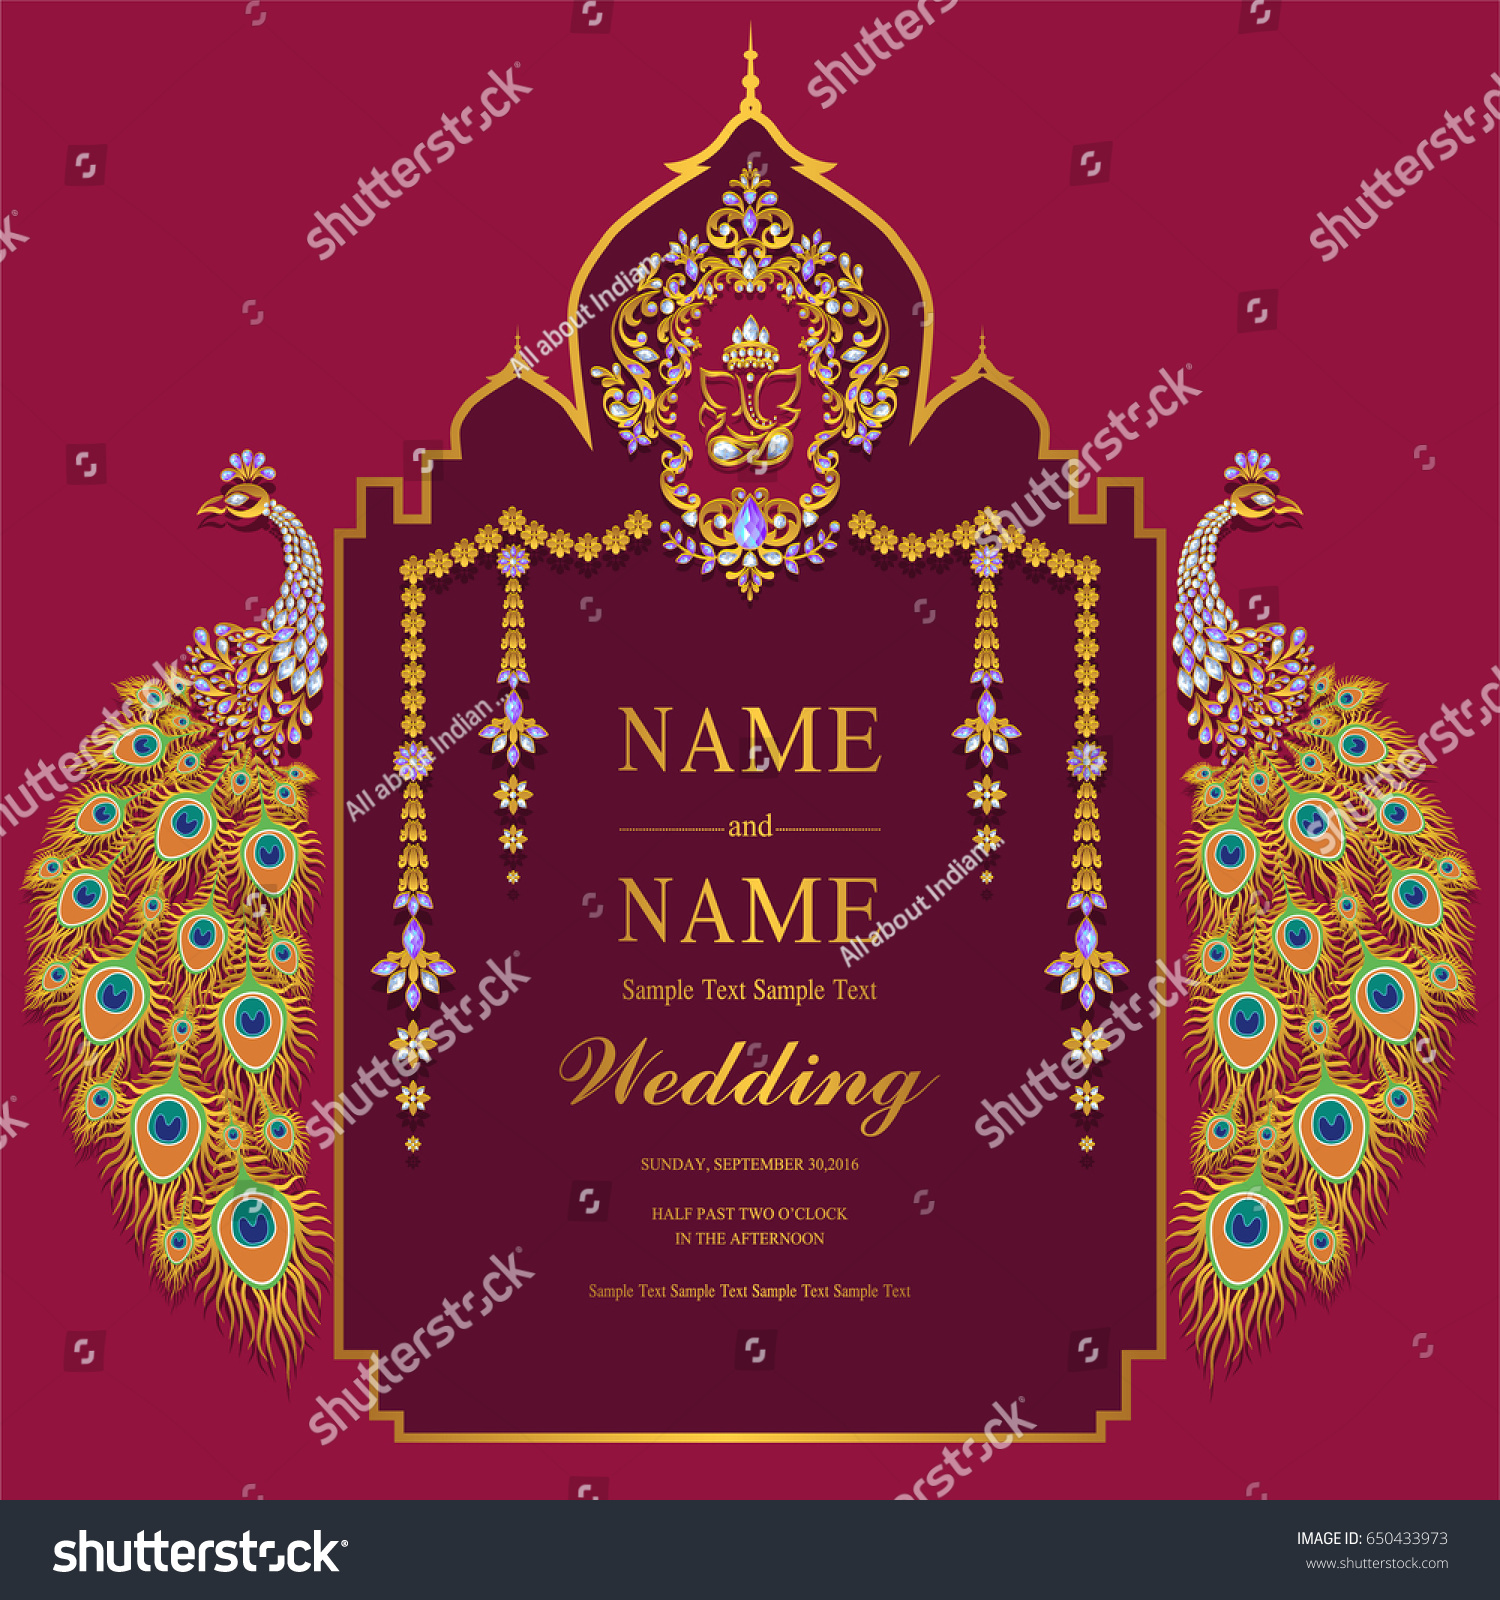 Wedding invitation card templates gold peacock stock vector wedding invitation card templates with gold peacock patterned and crystals on paper color pronofoot35fo Choice Image